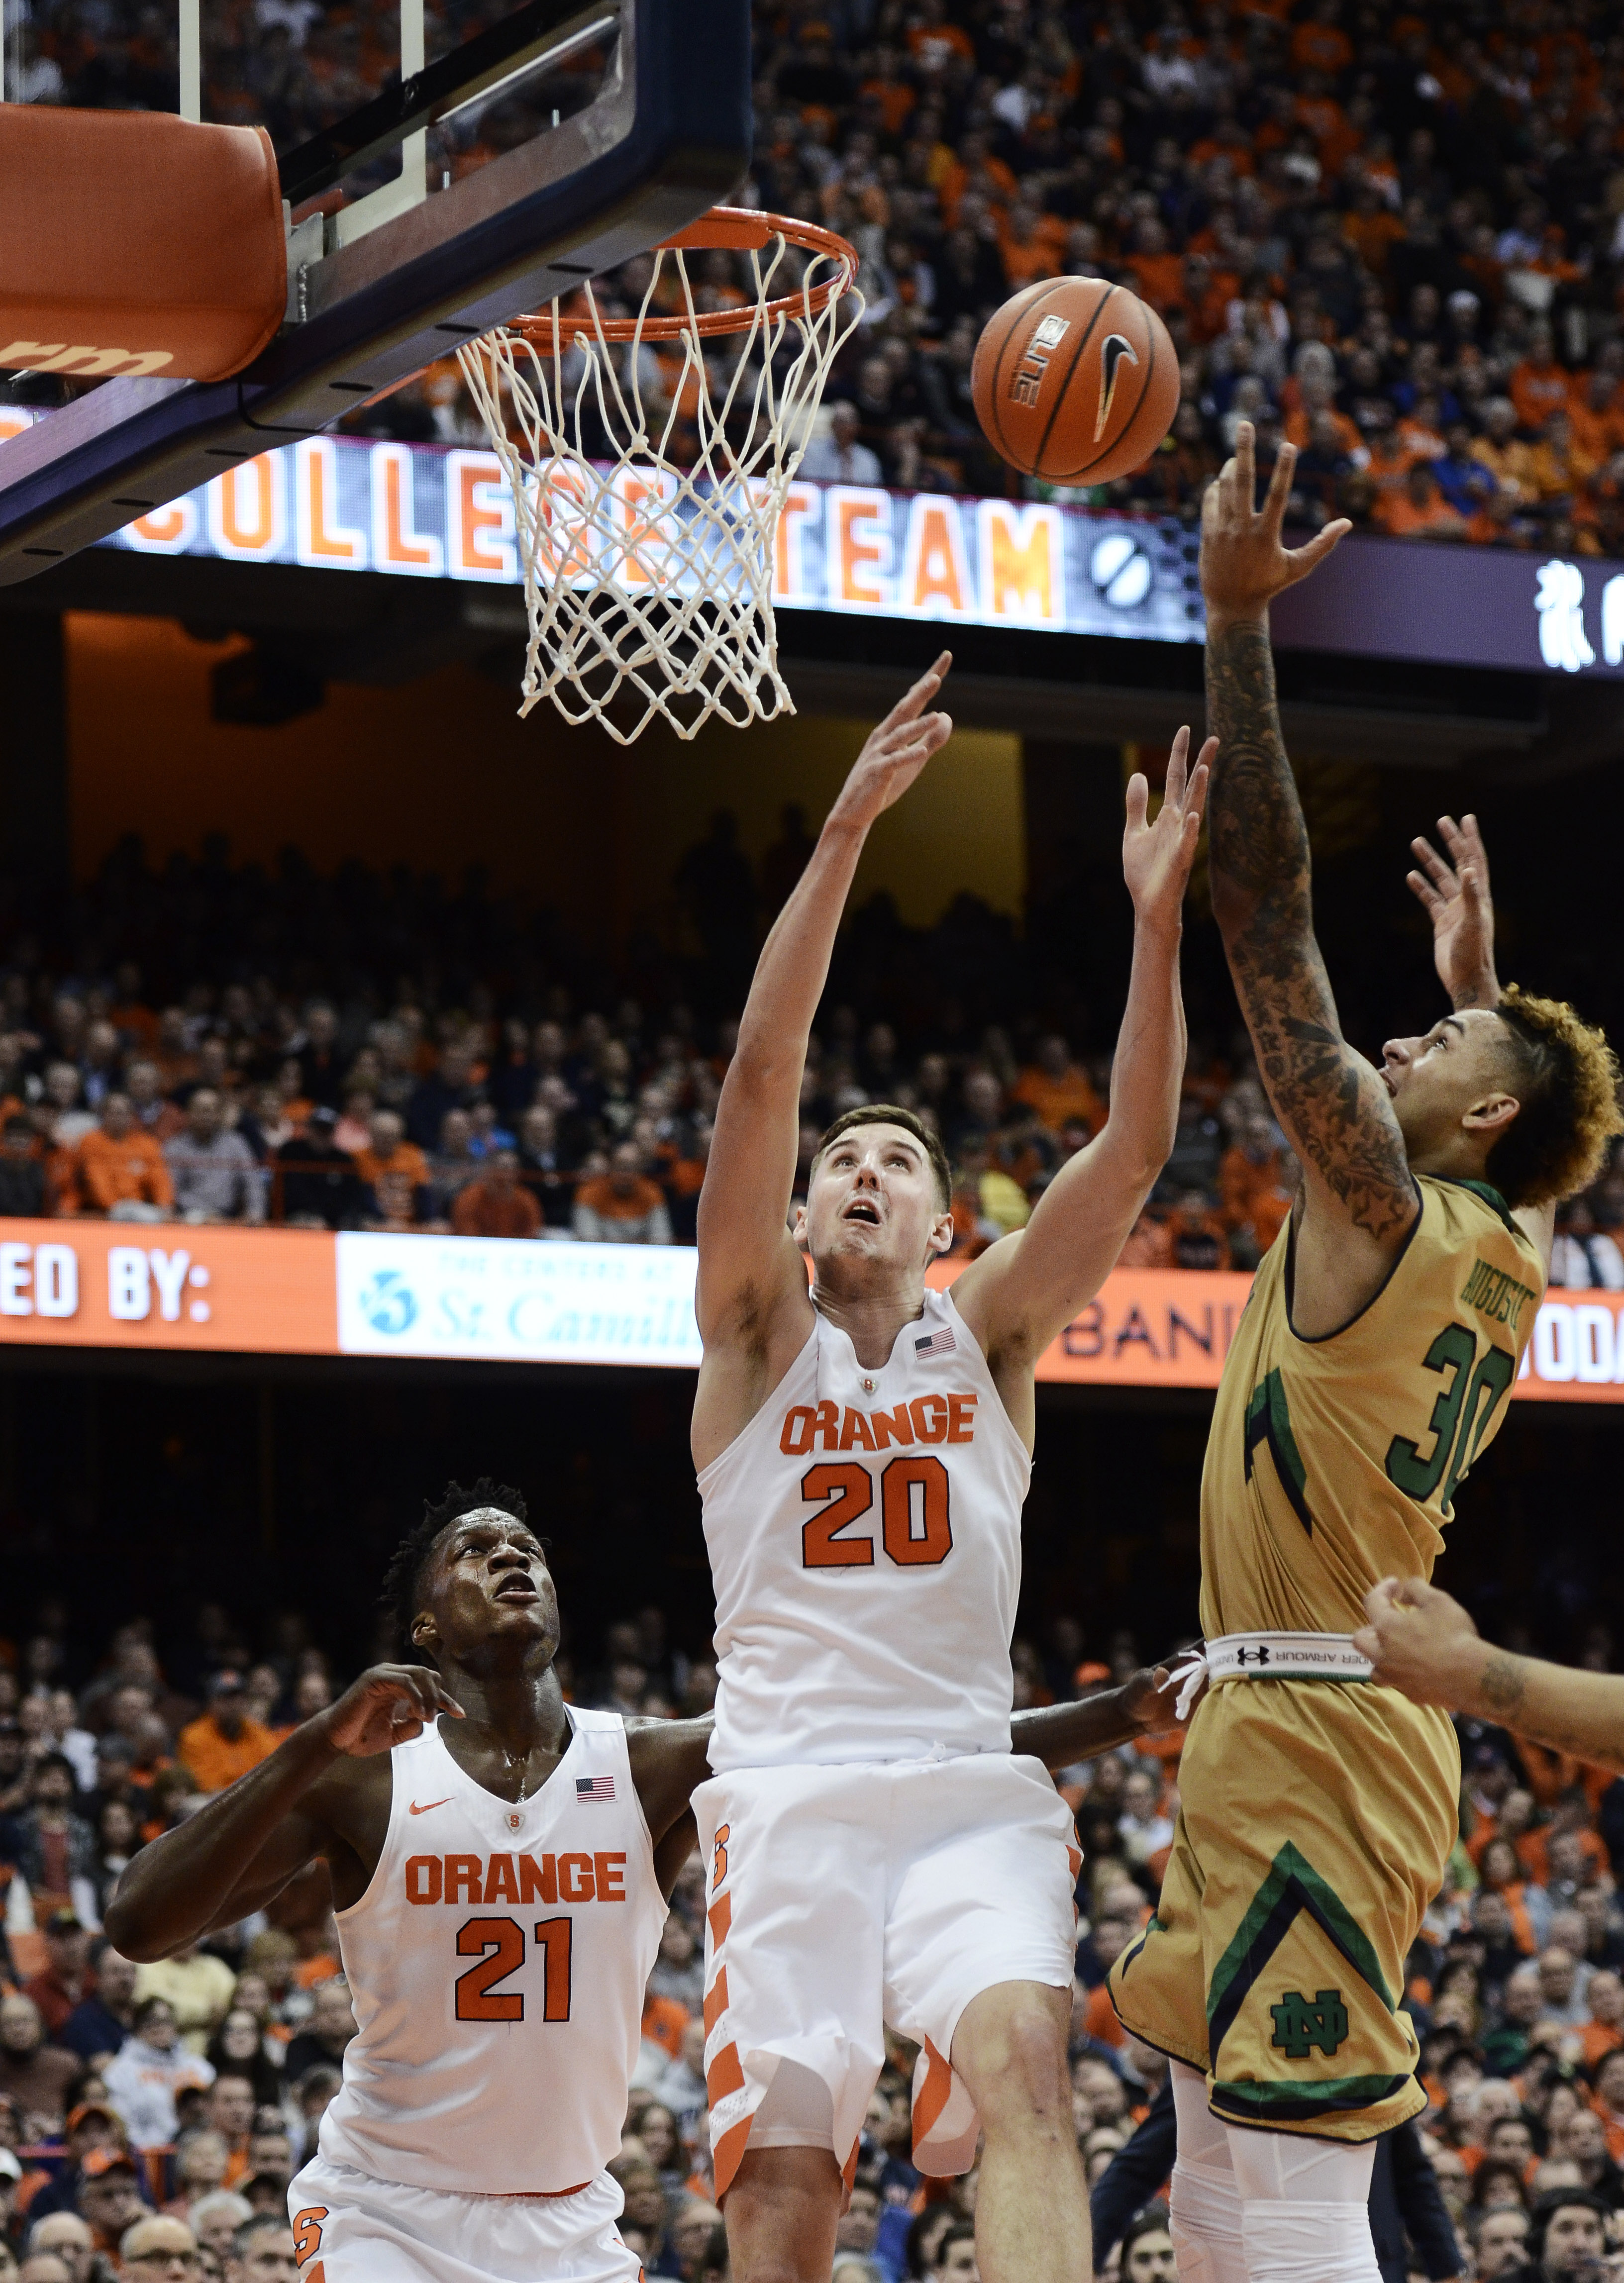 Syracuse's Tyler Lydon, center, attempts to block Notre Dame's Zach Auguste's, right, attempt at a layup during the first half of an NCAA college basketball game at at the Carrier Dome in Syracuse, N.Y., Thursday, Jan. 28, 2016. (AP Photo/Heather Ainswort